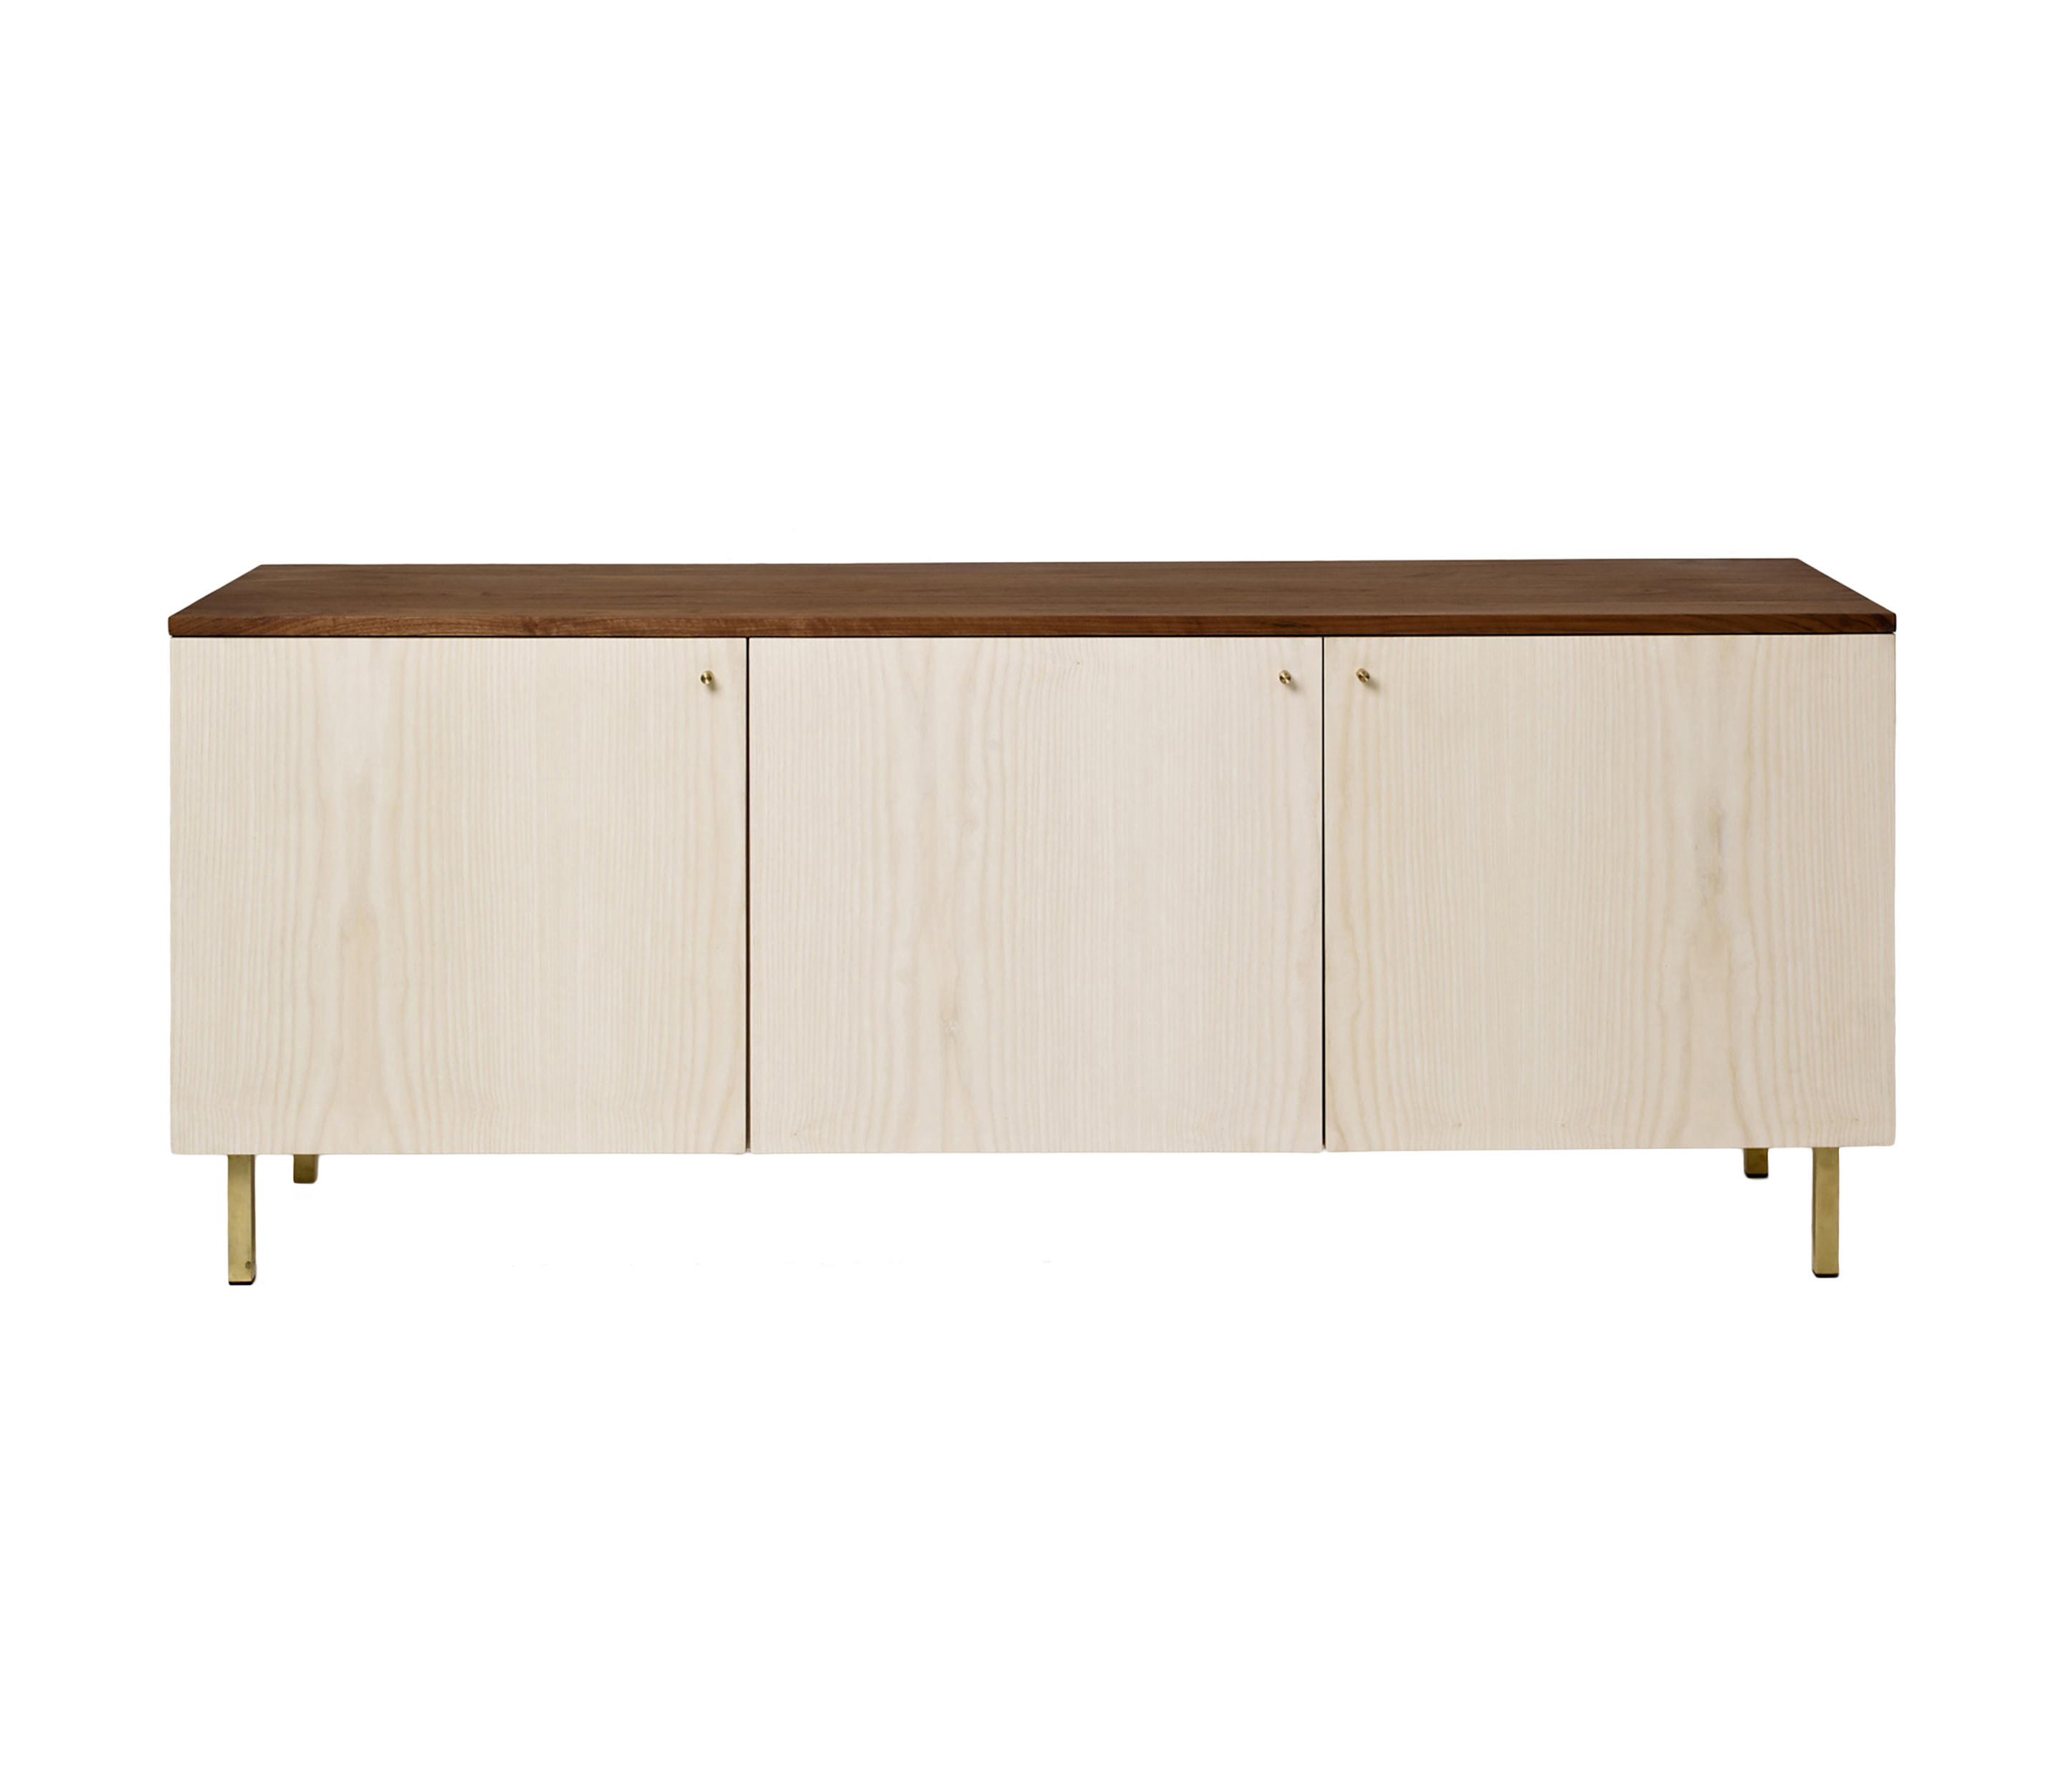 Oil Pale Finish 4 Door Sideboards Intended For Widely Used Sideboard Two 3 Door – Ash & Walnut – Sideboards From Another (Gallery 8 of 20)